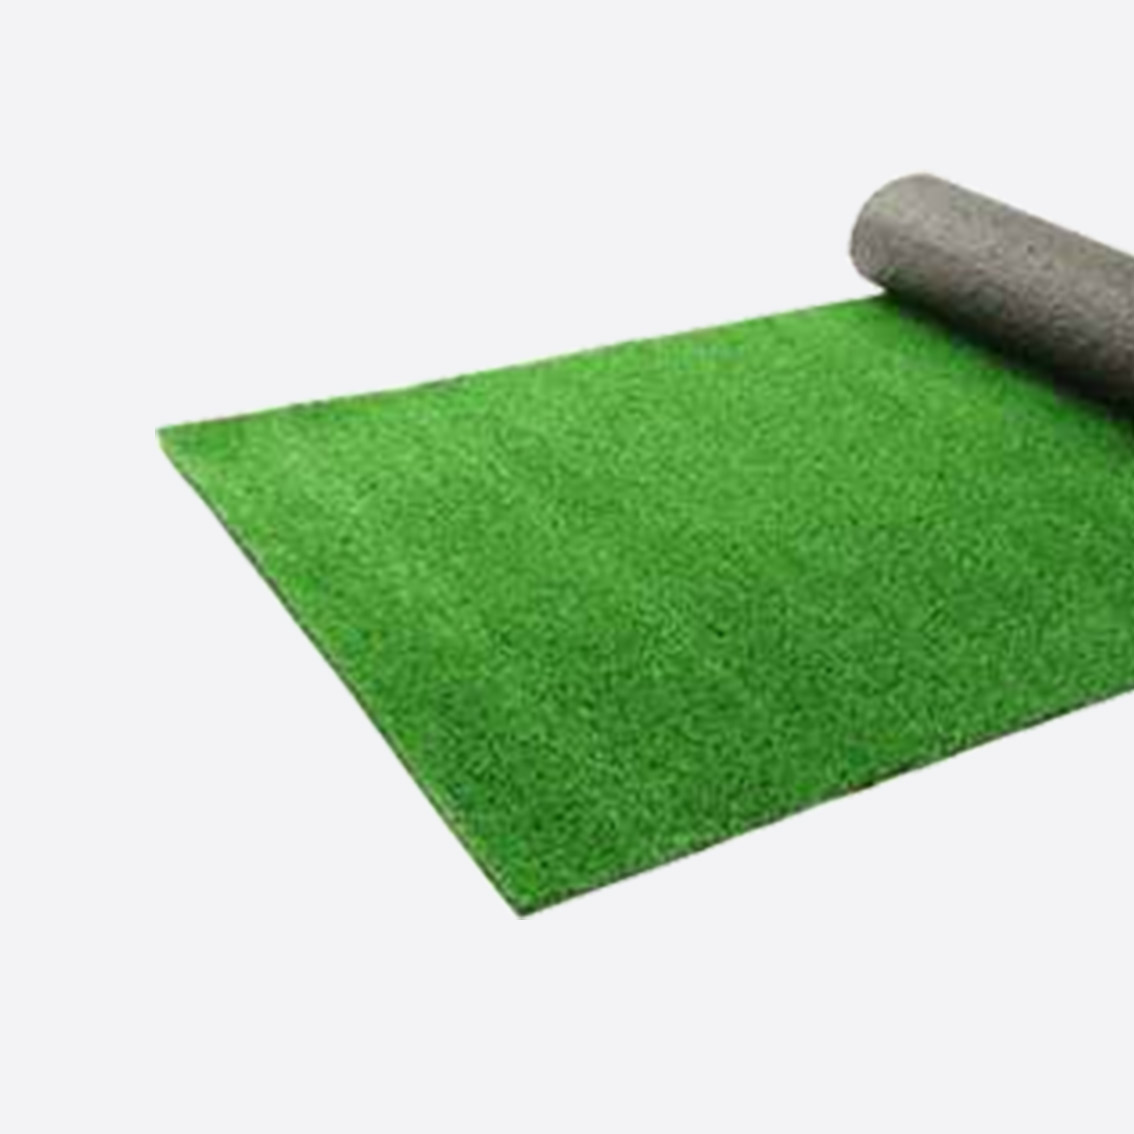 SYNTHETIC GRASS HIRE   FROM $4.00